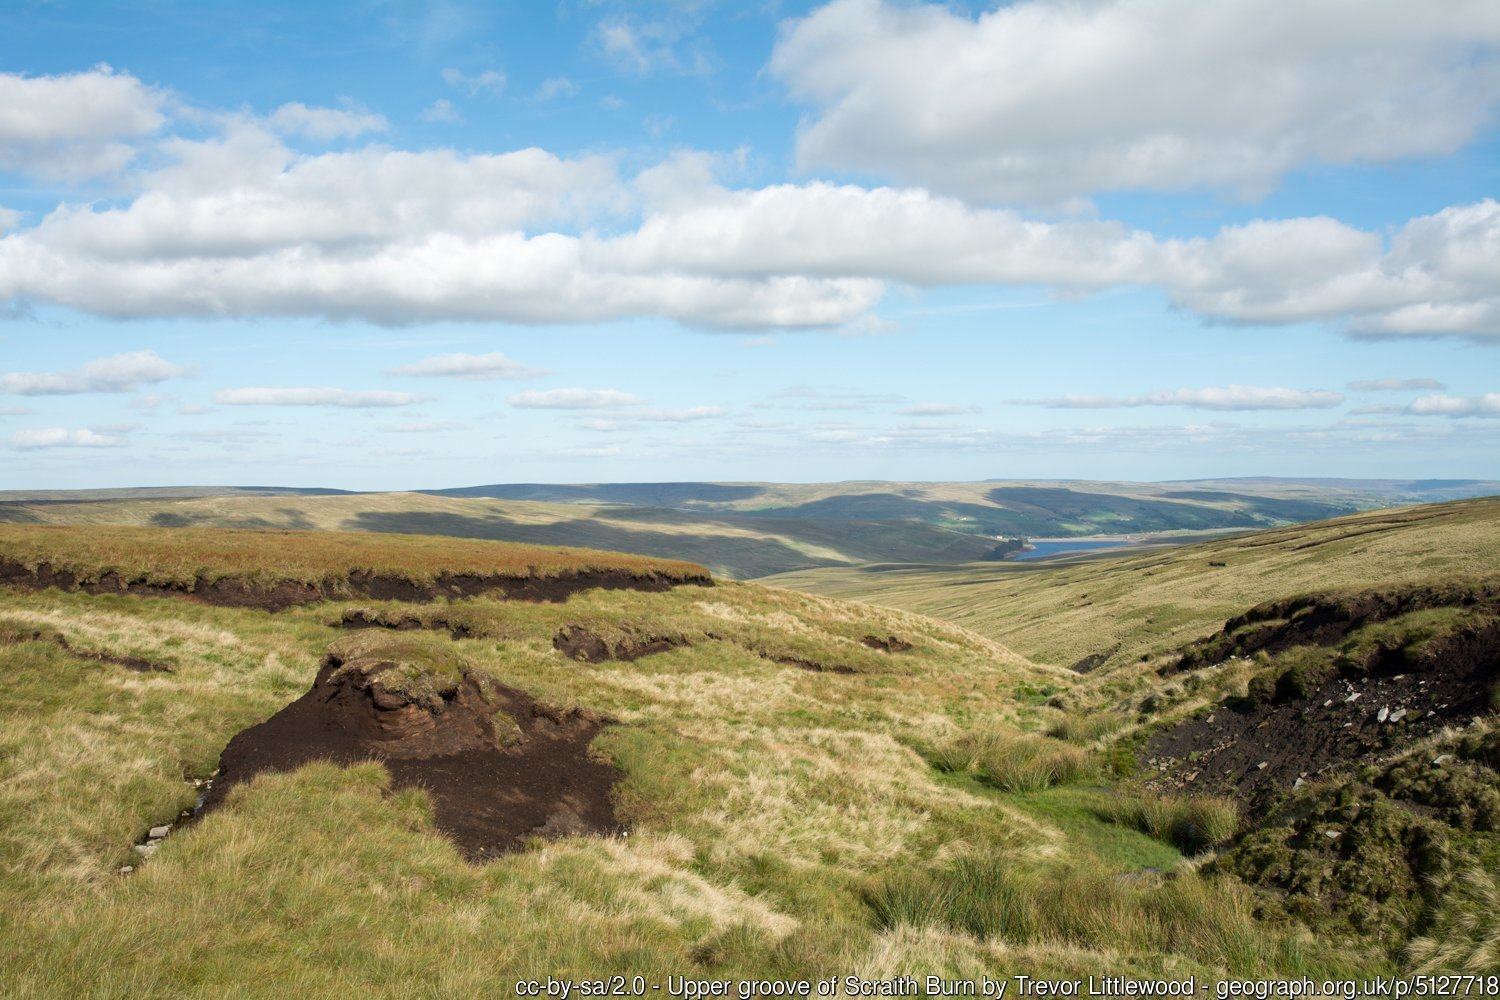 22 - Burnhope Seat - The Highest Mountains In England - The Top 25